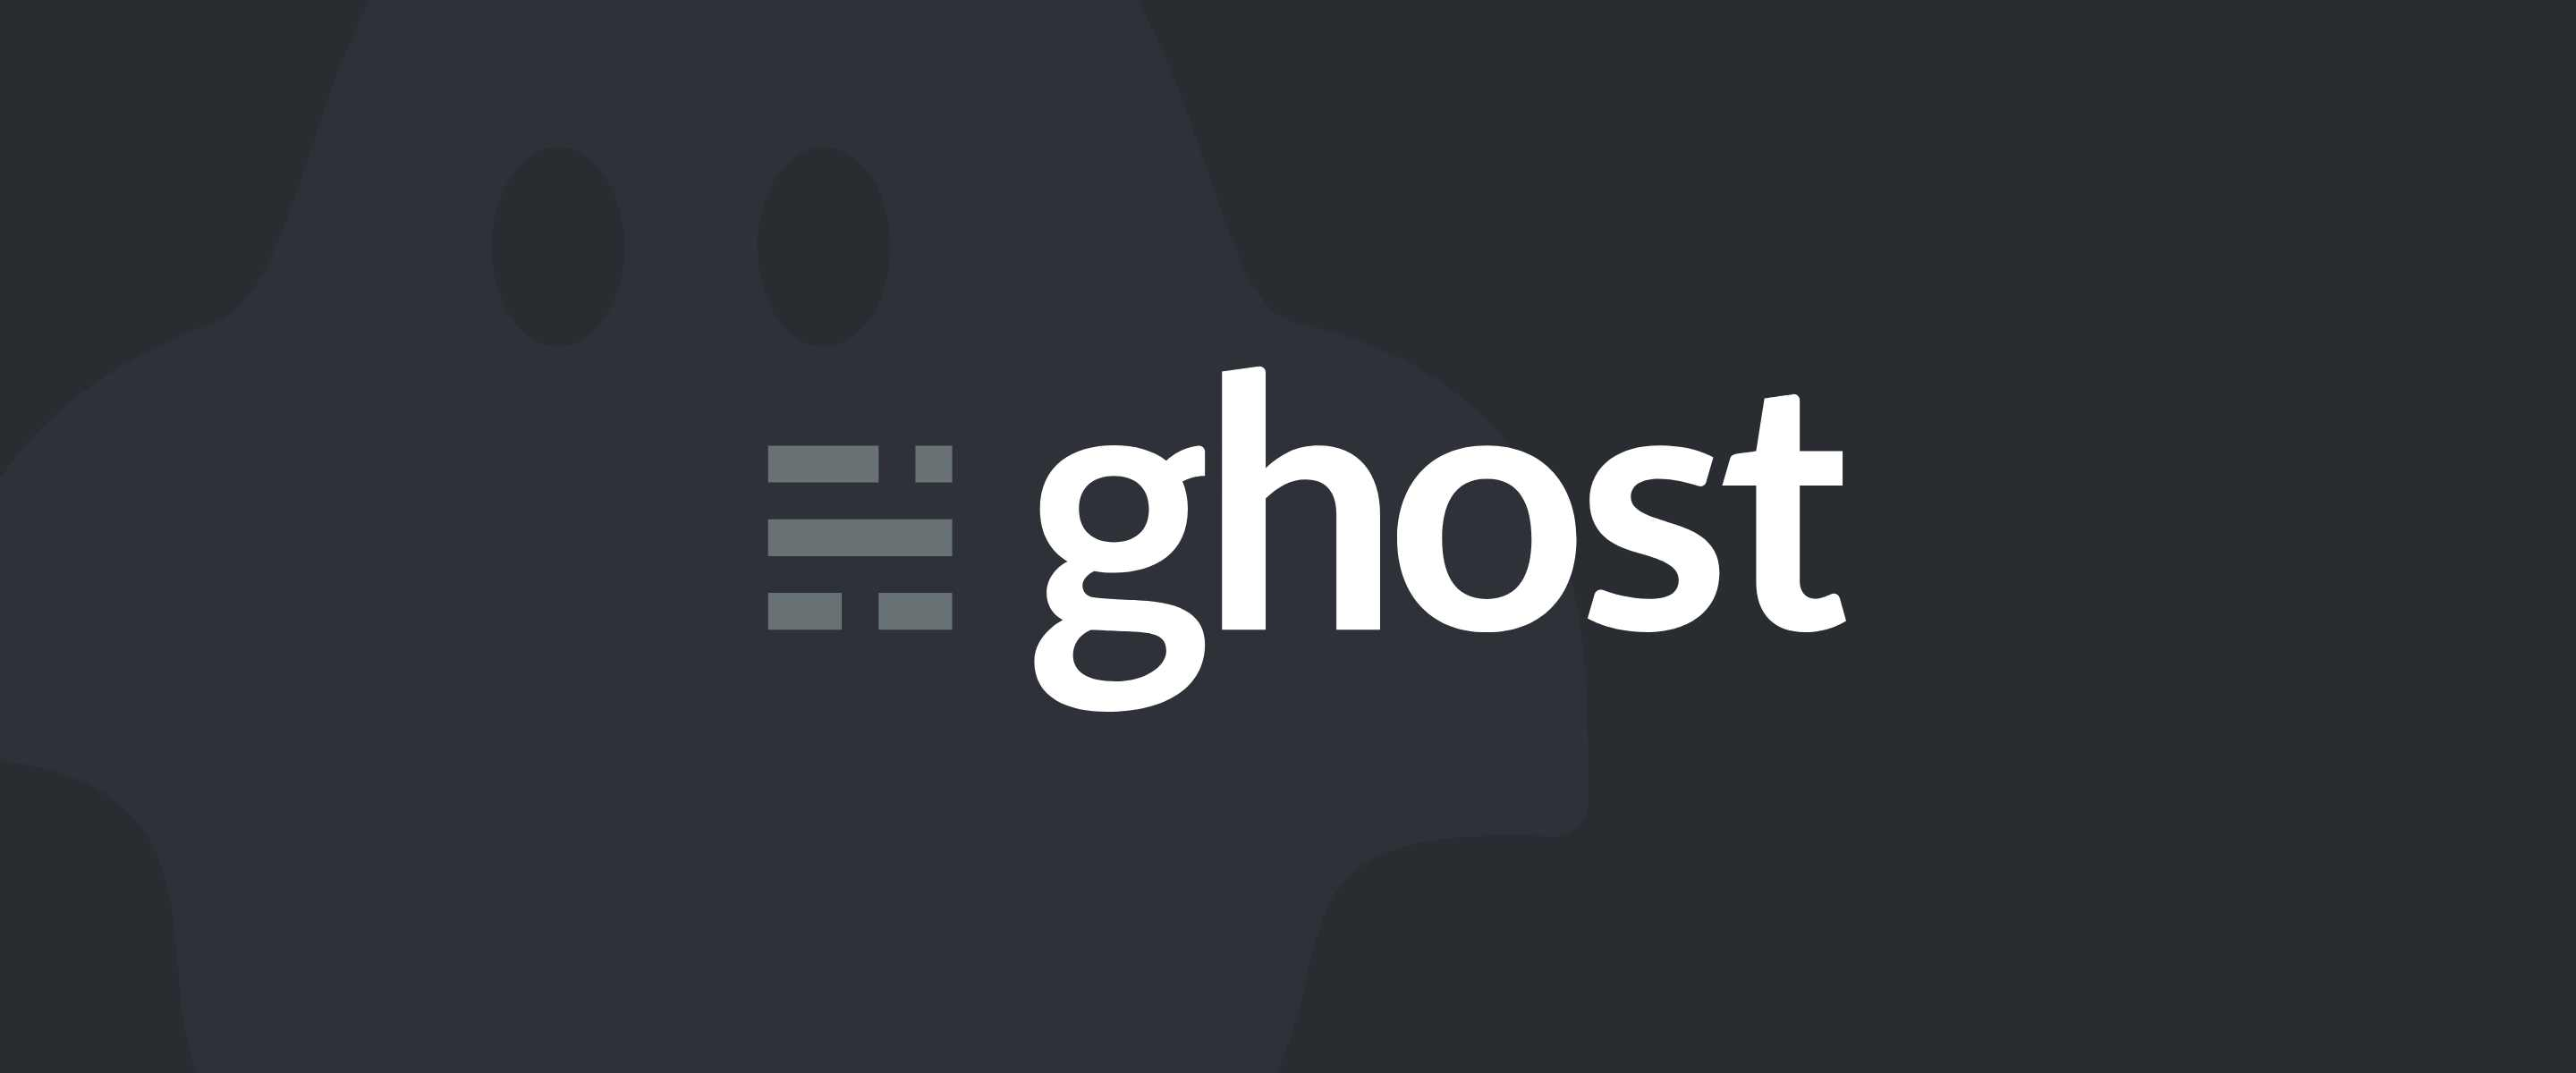 Ghost CMS: How to install on your Ubuntu 16.04 VPS